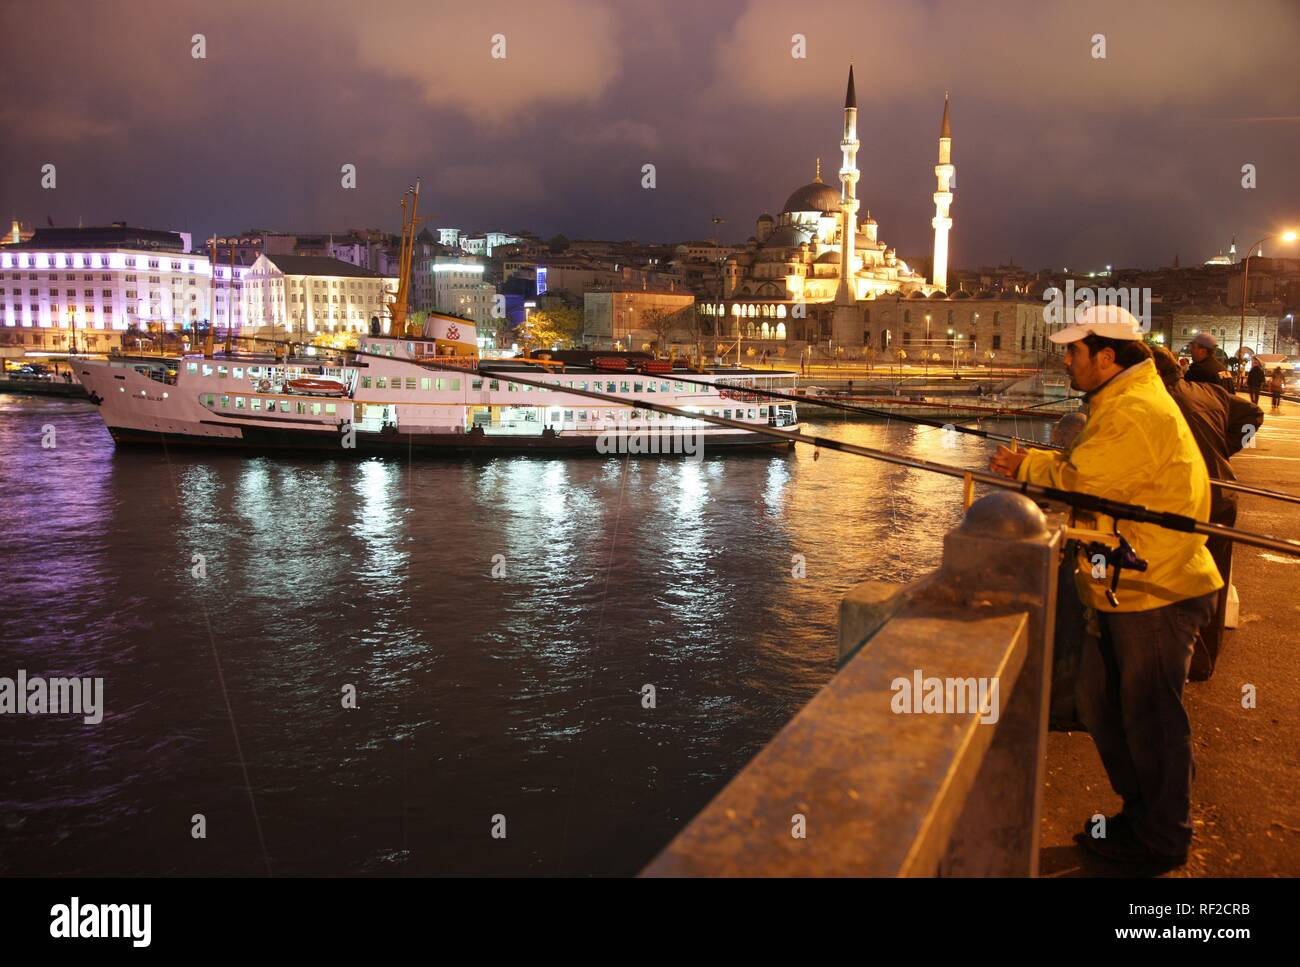 Galata Bridge over the Golden Horn, two-storied road bridge, traffic above, bars and restaurants below, Istanbul, Turkey - Stock Image